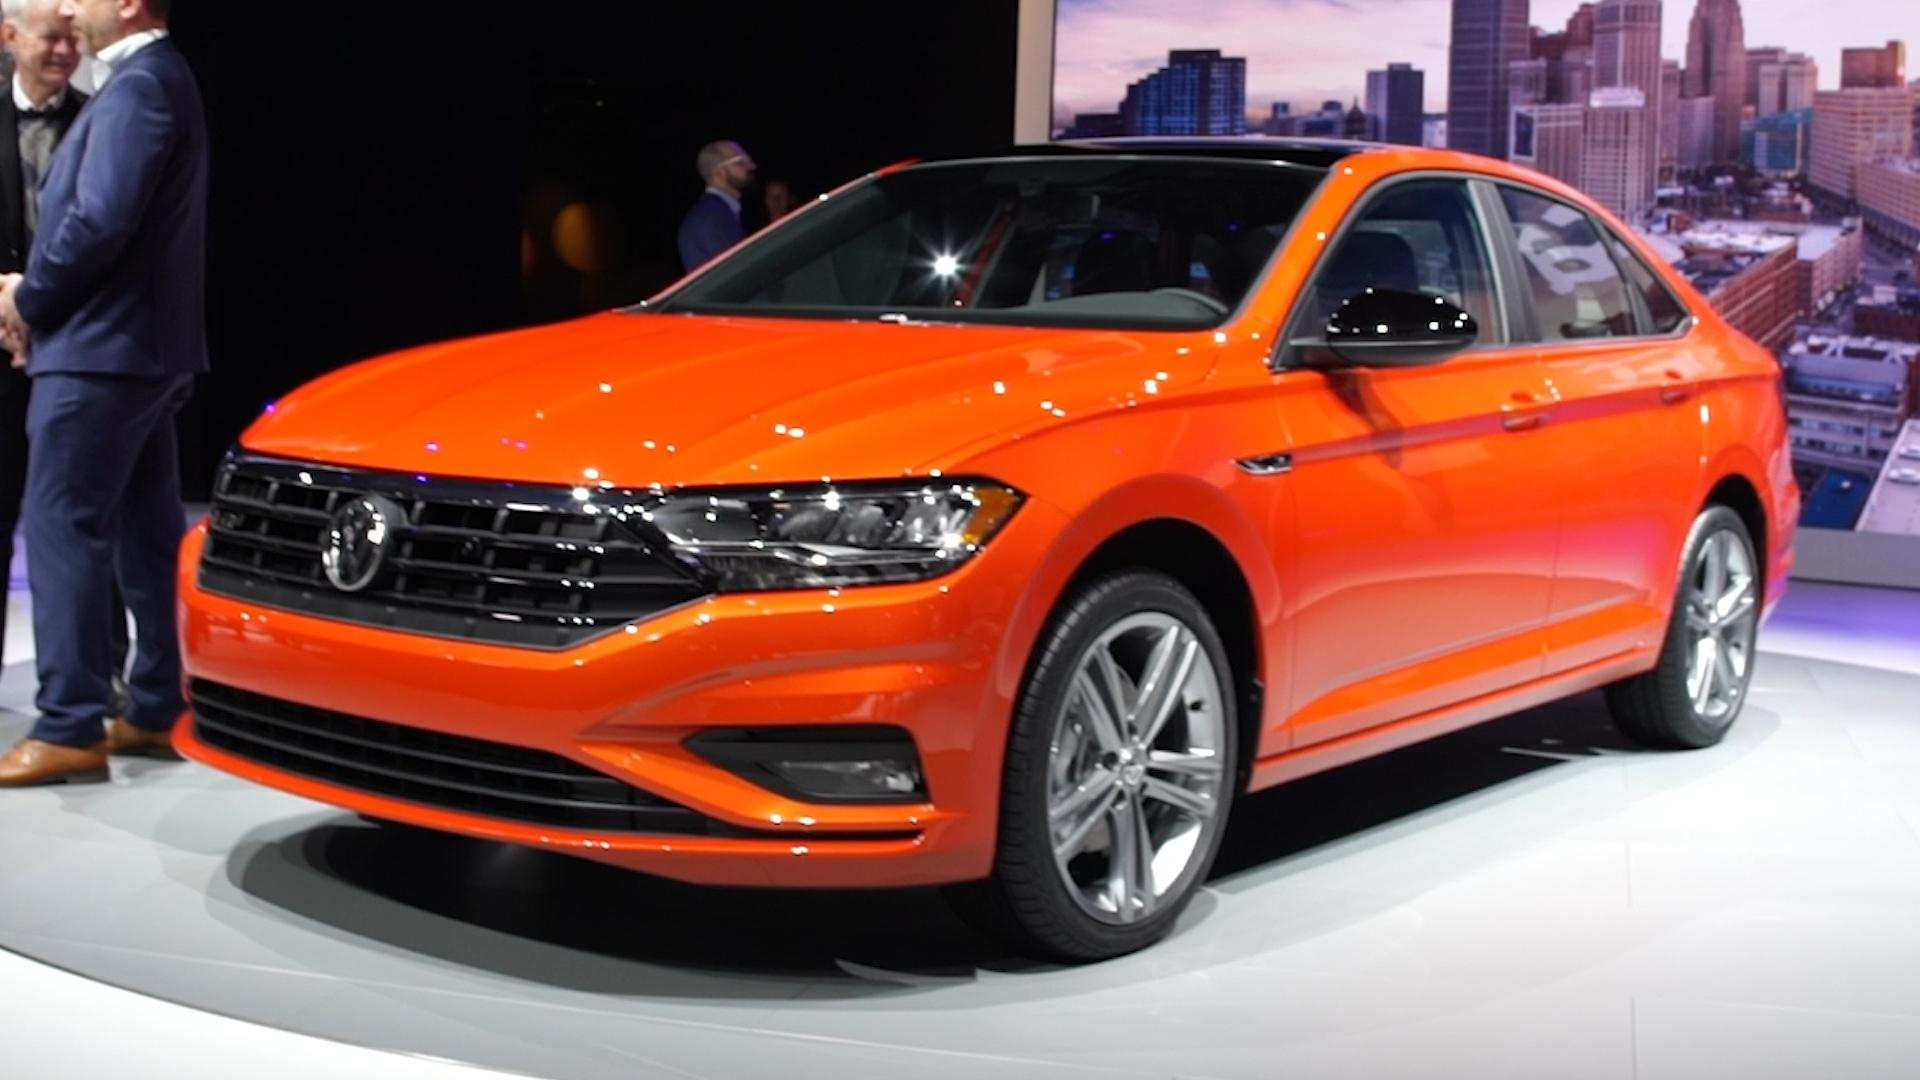 36 Best Review Best Volkswagen R Line Jetta 2019 Exterior Pricing by Best Volkswagen R Line Jetta 2019 Exterior